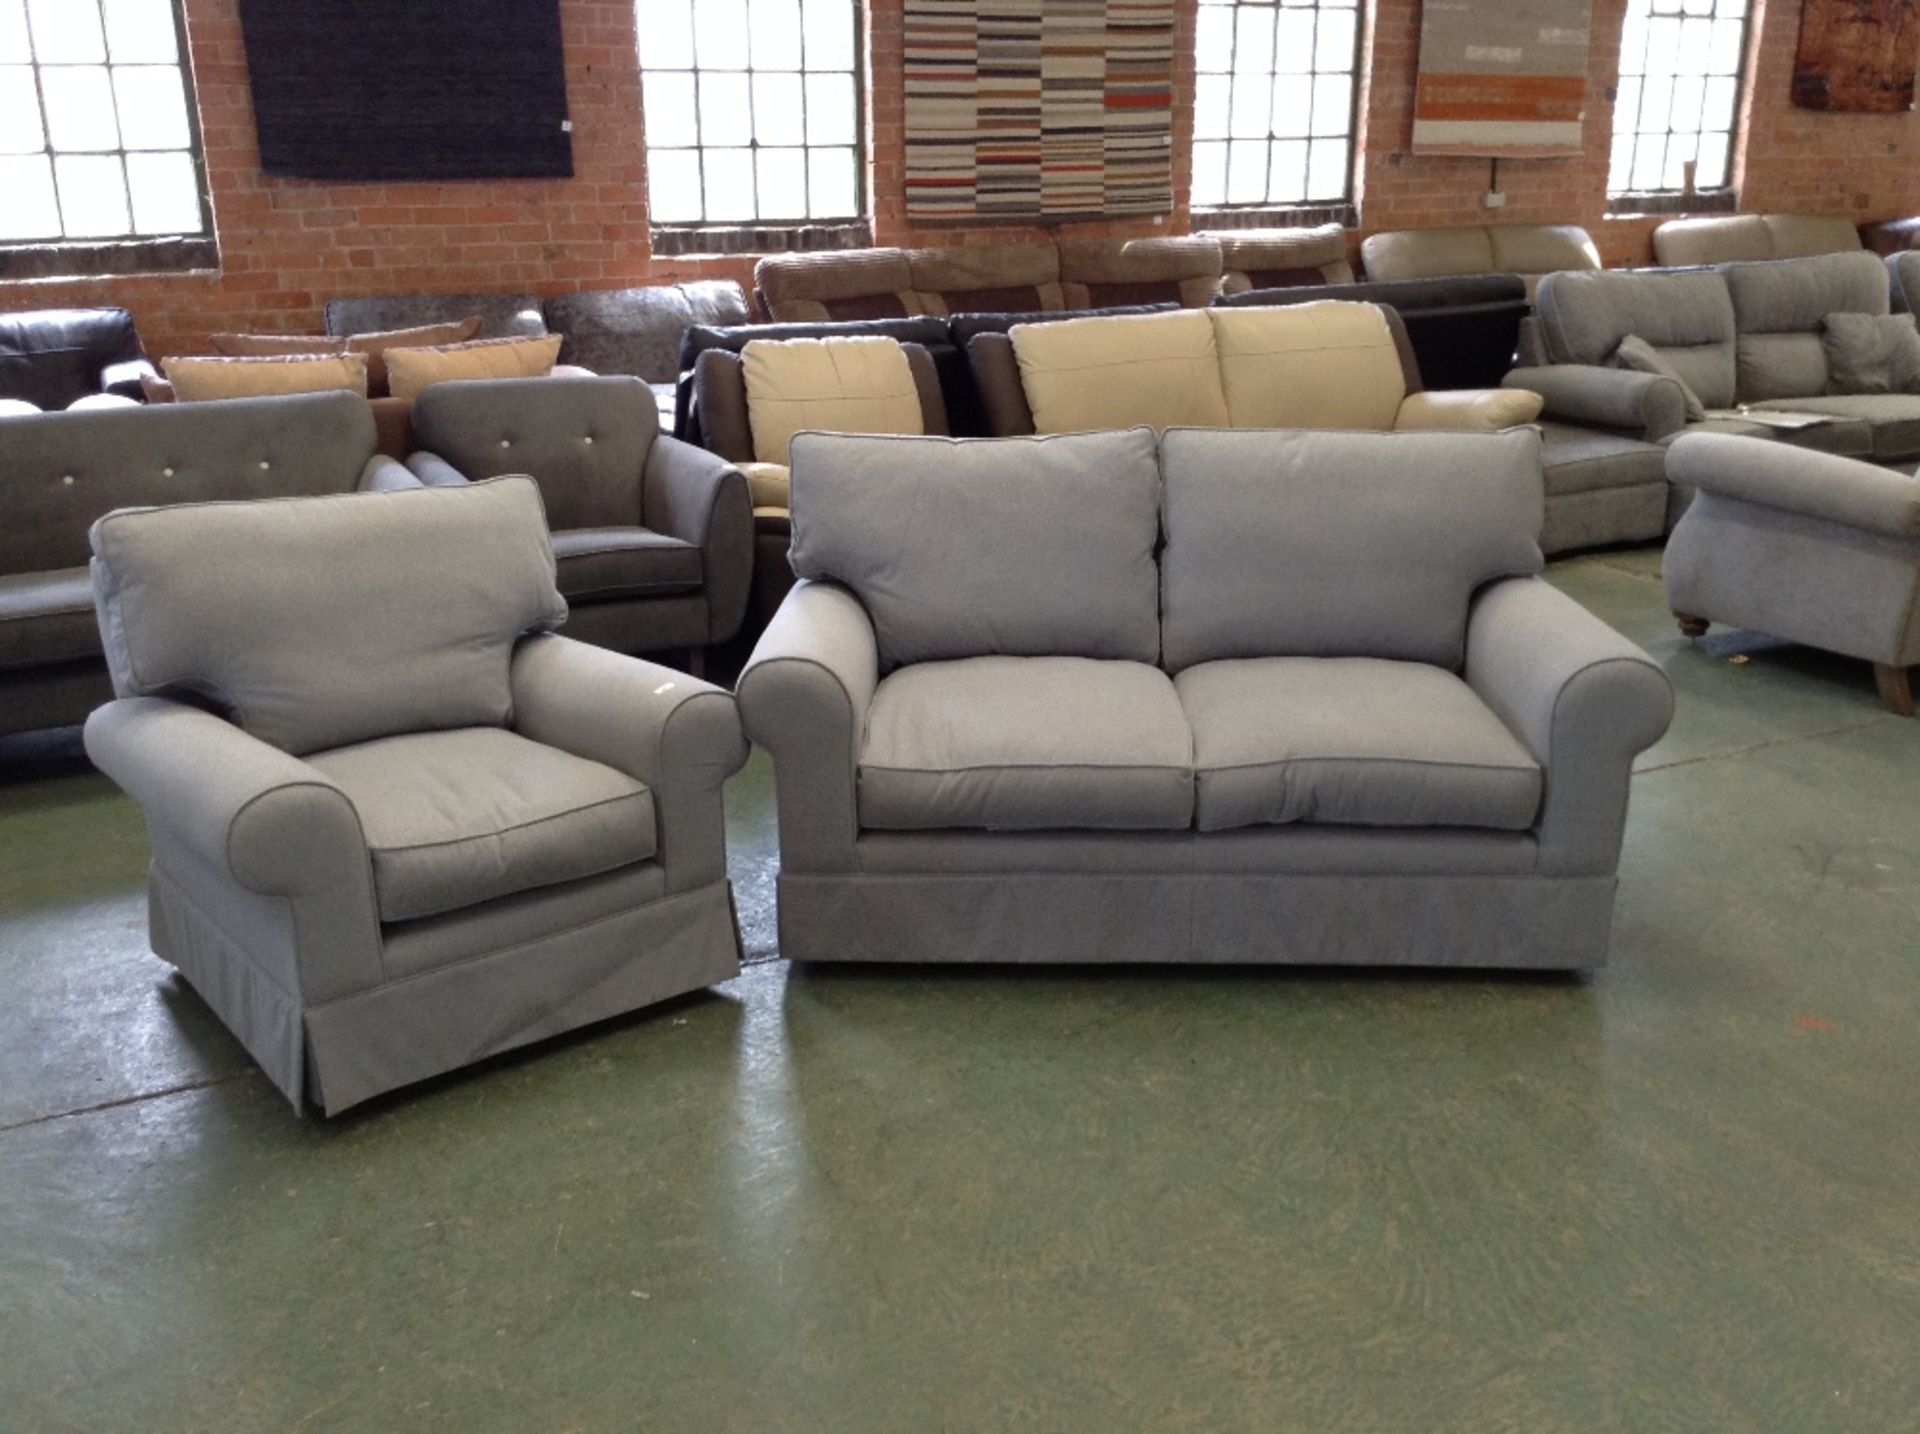 Lot 42 - GREY FABRIC 2 SEATER SOFA AND CHAIR (TROO1629-WOO5